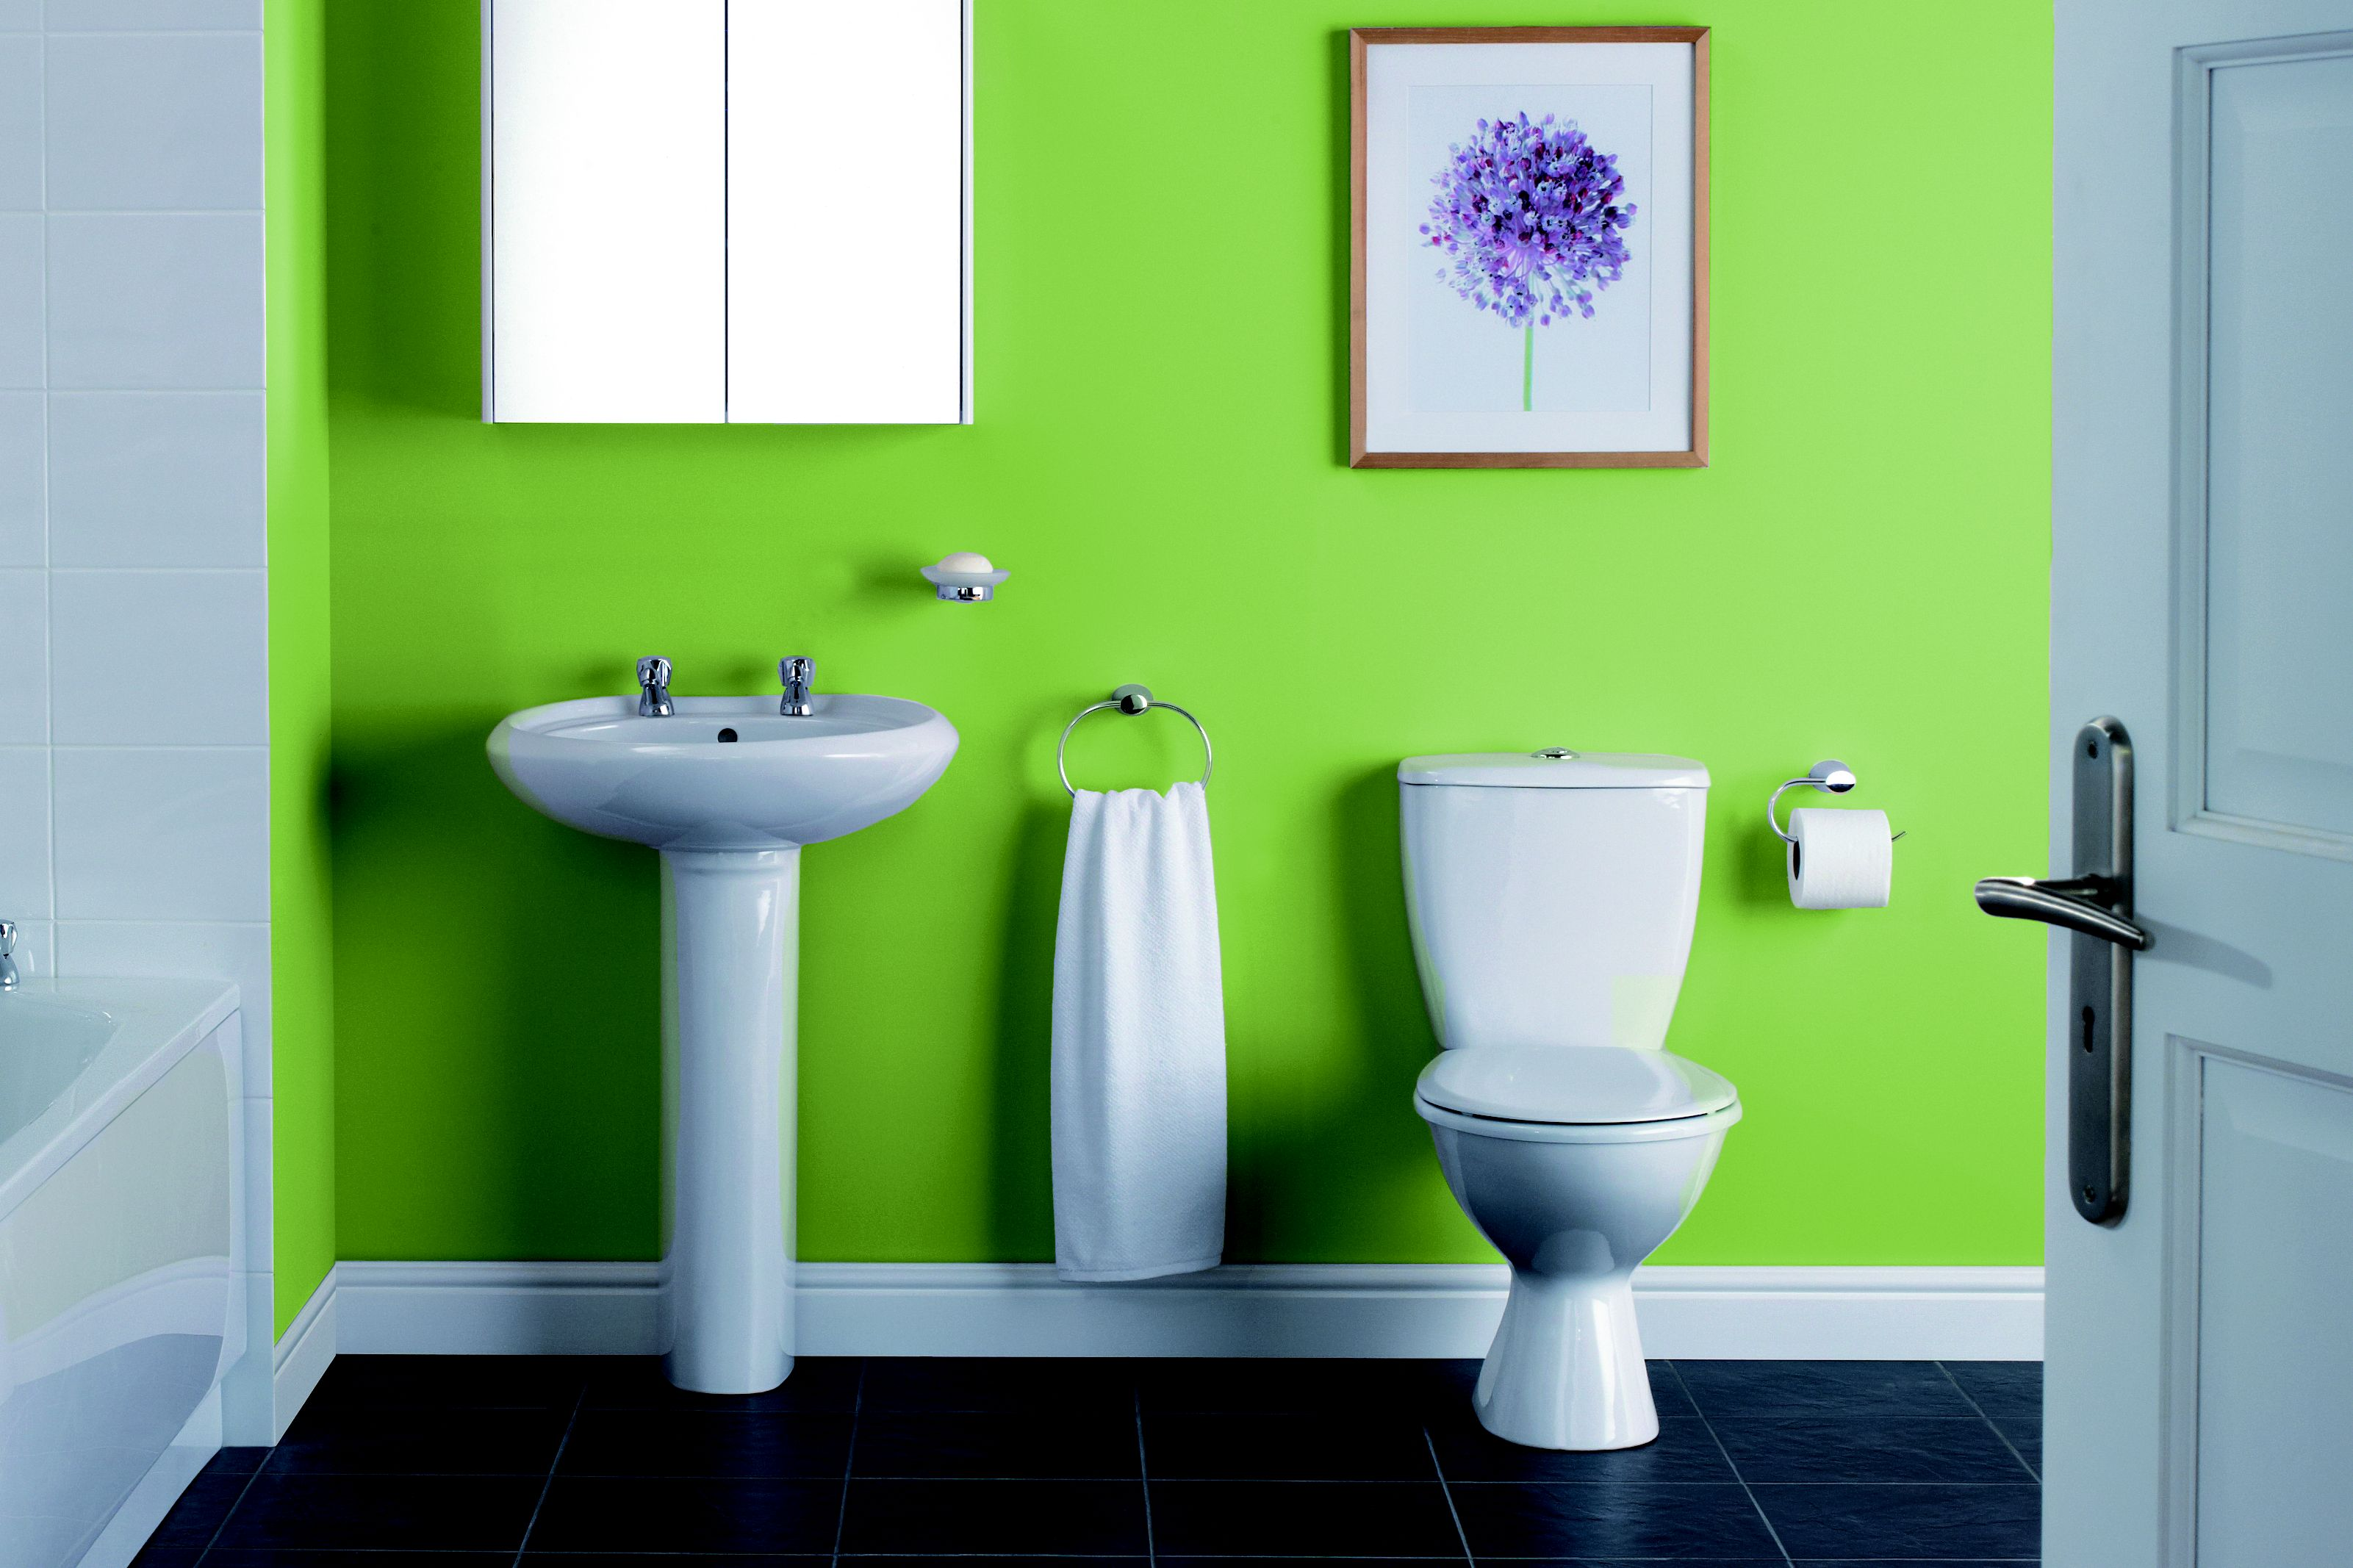 Image of Newbury bathroom suite